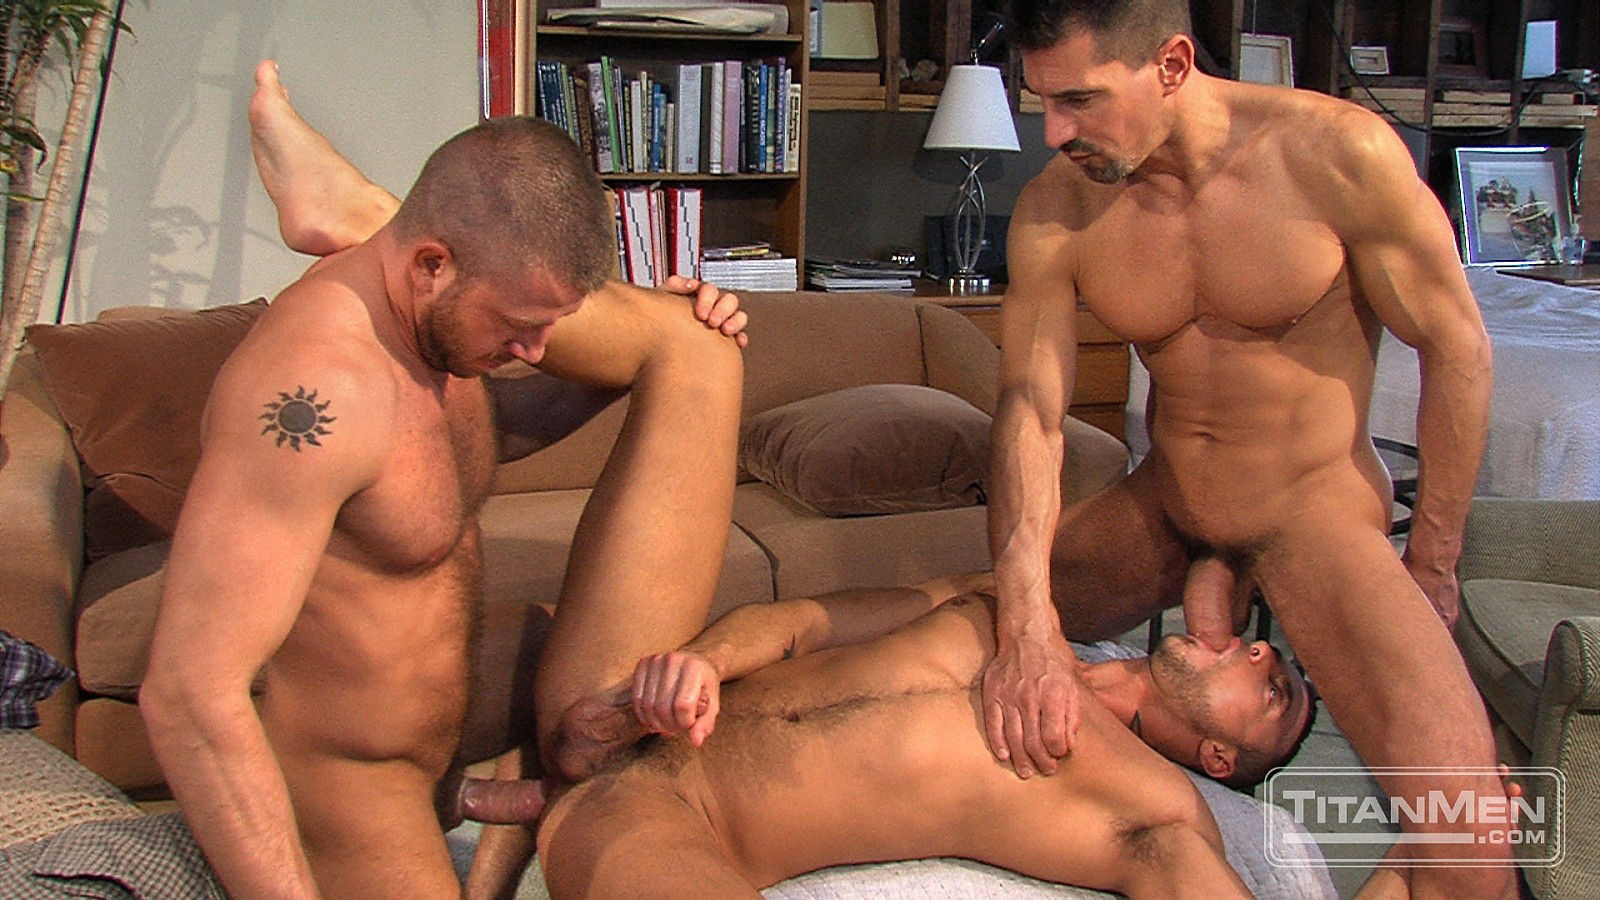 Gay sex story multiple sex partners blonde